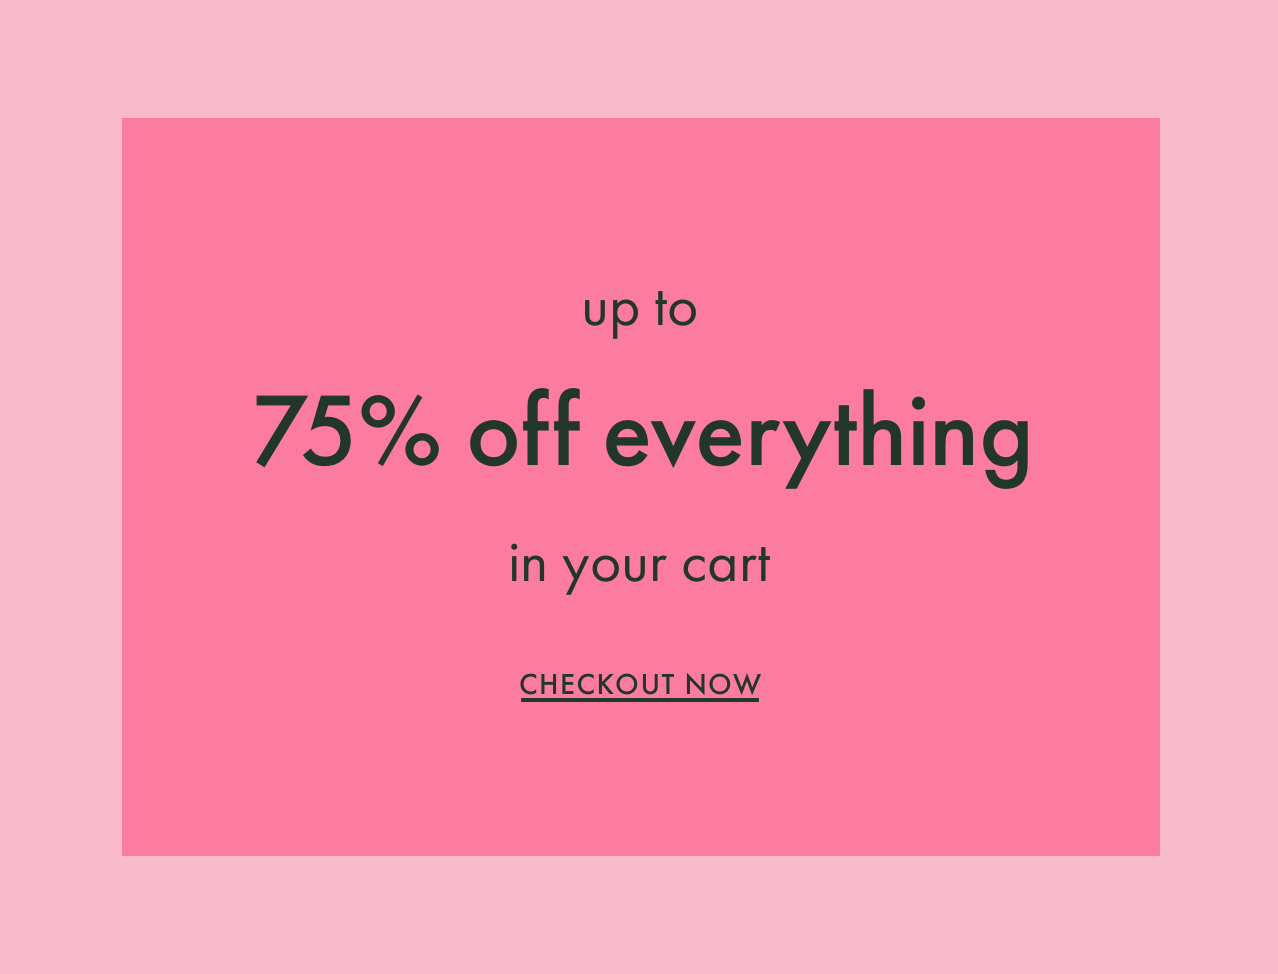 up to 75% off everything in your cart